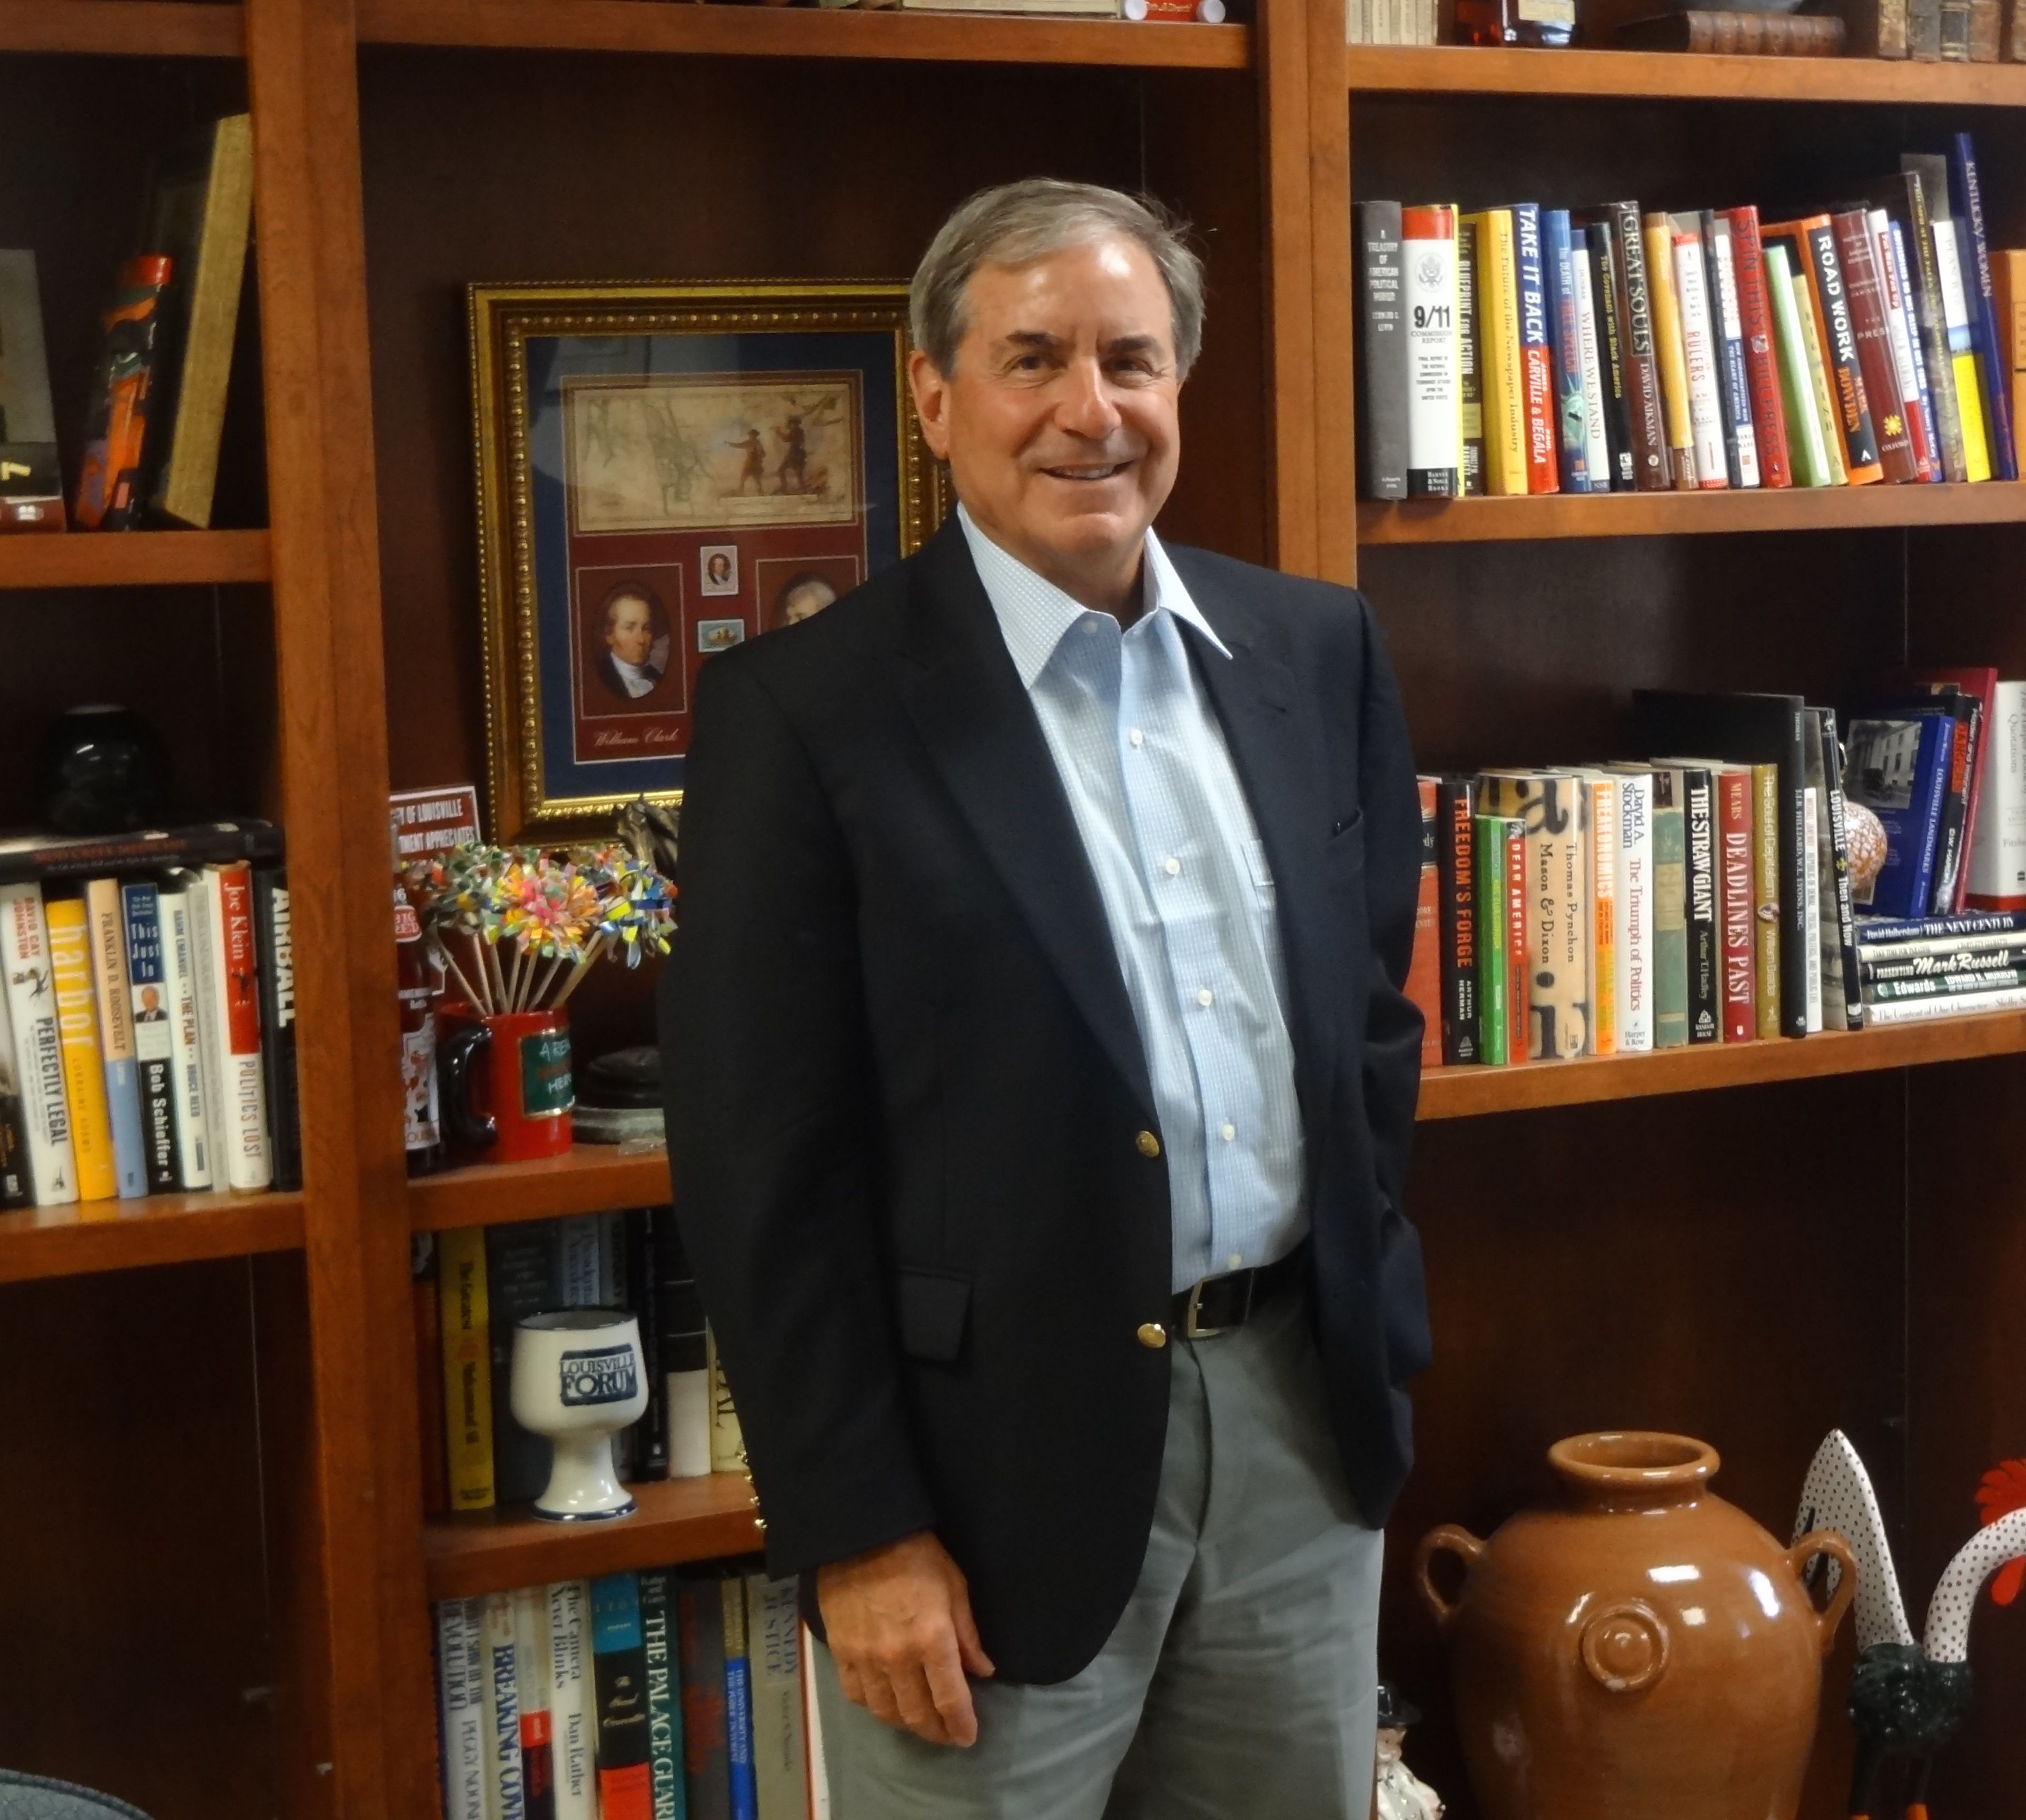 At work, U.S. Rep. John Yarmuth